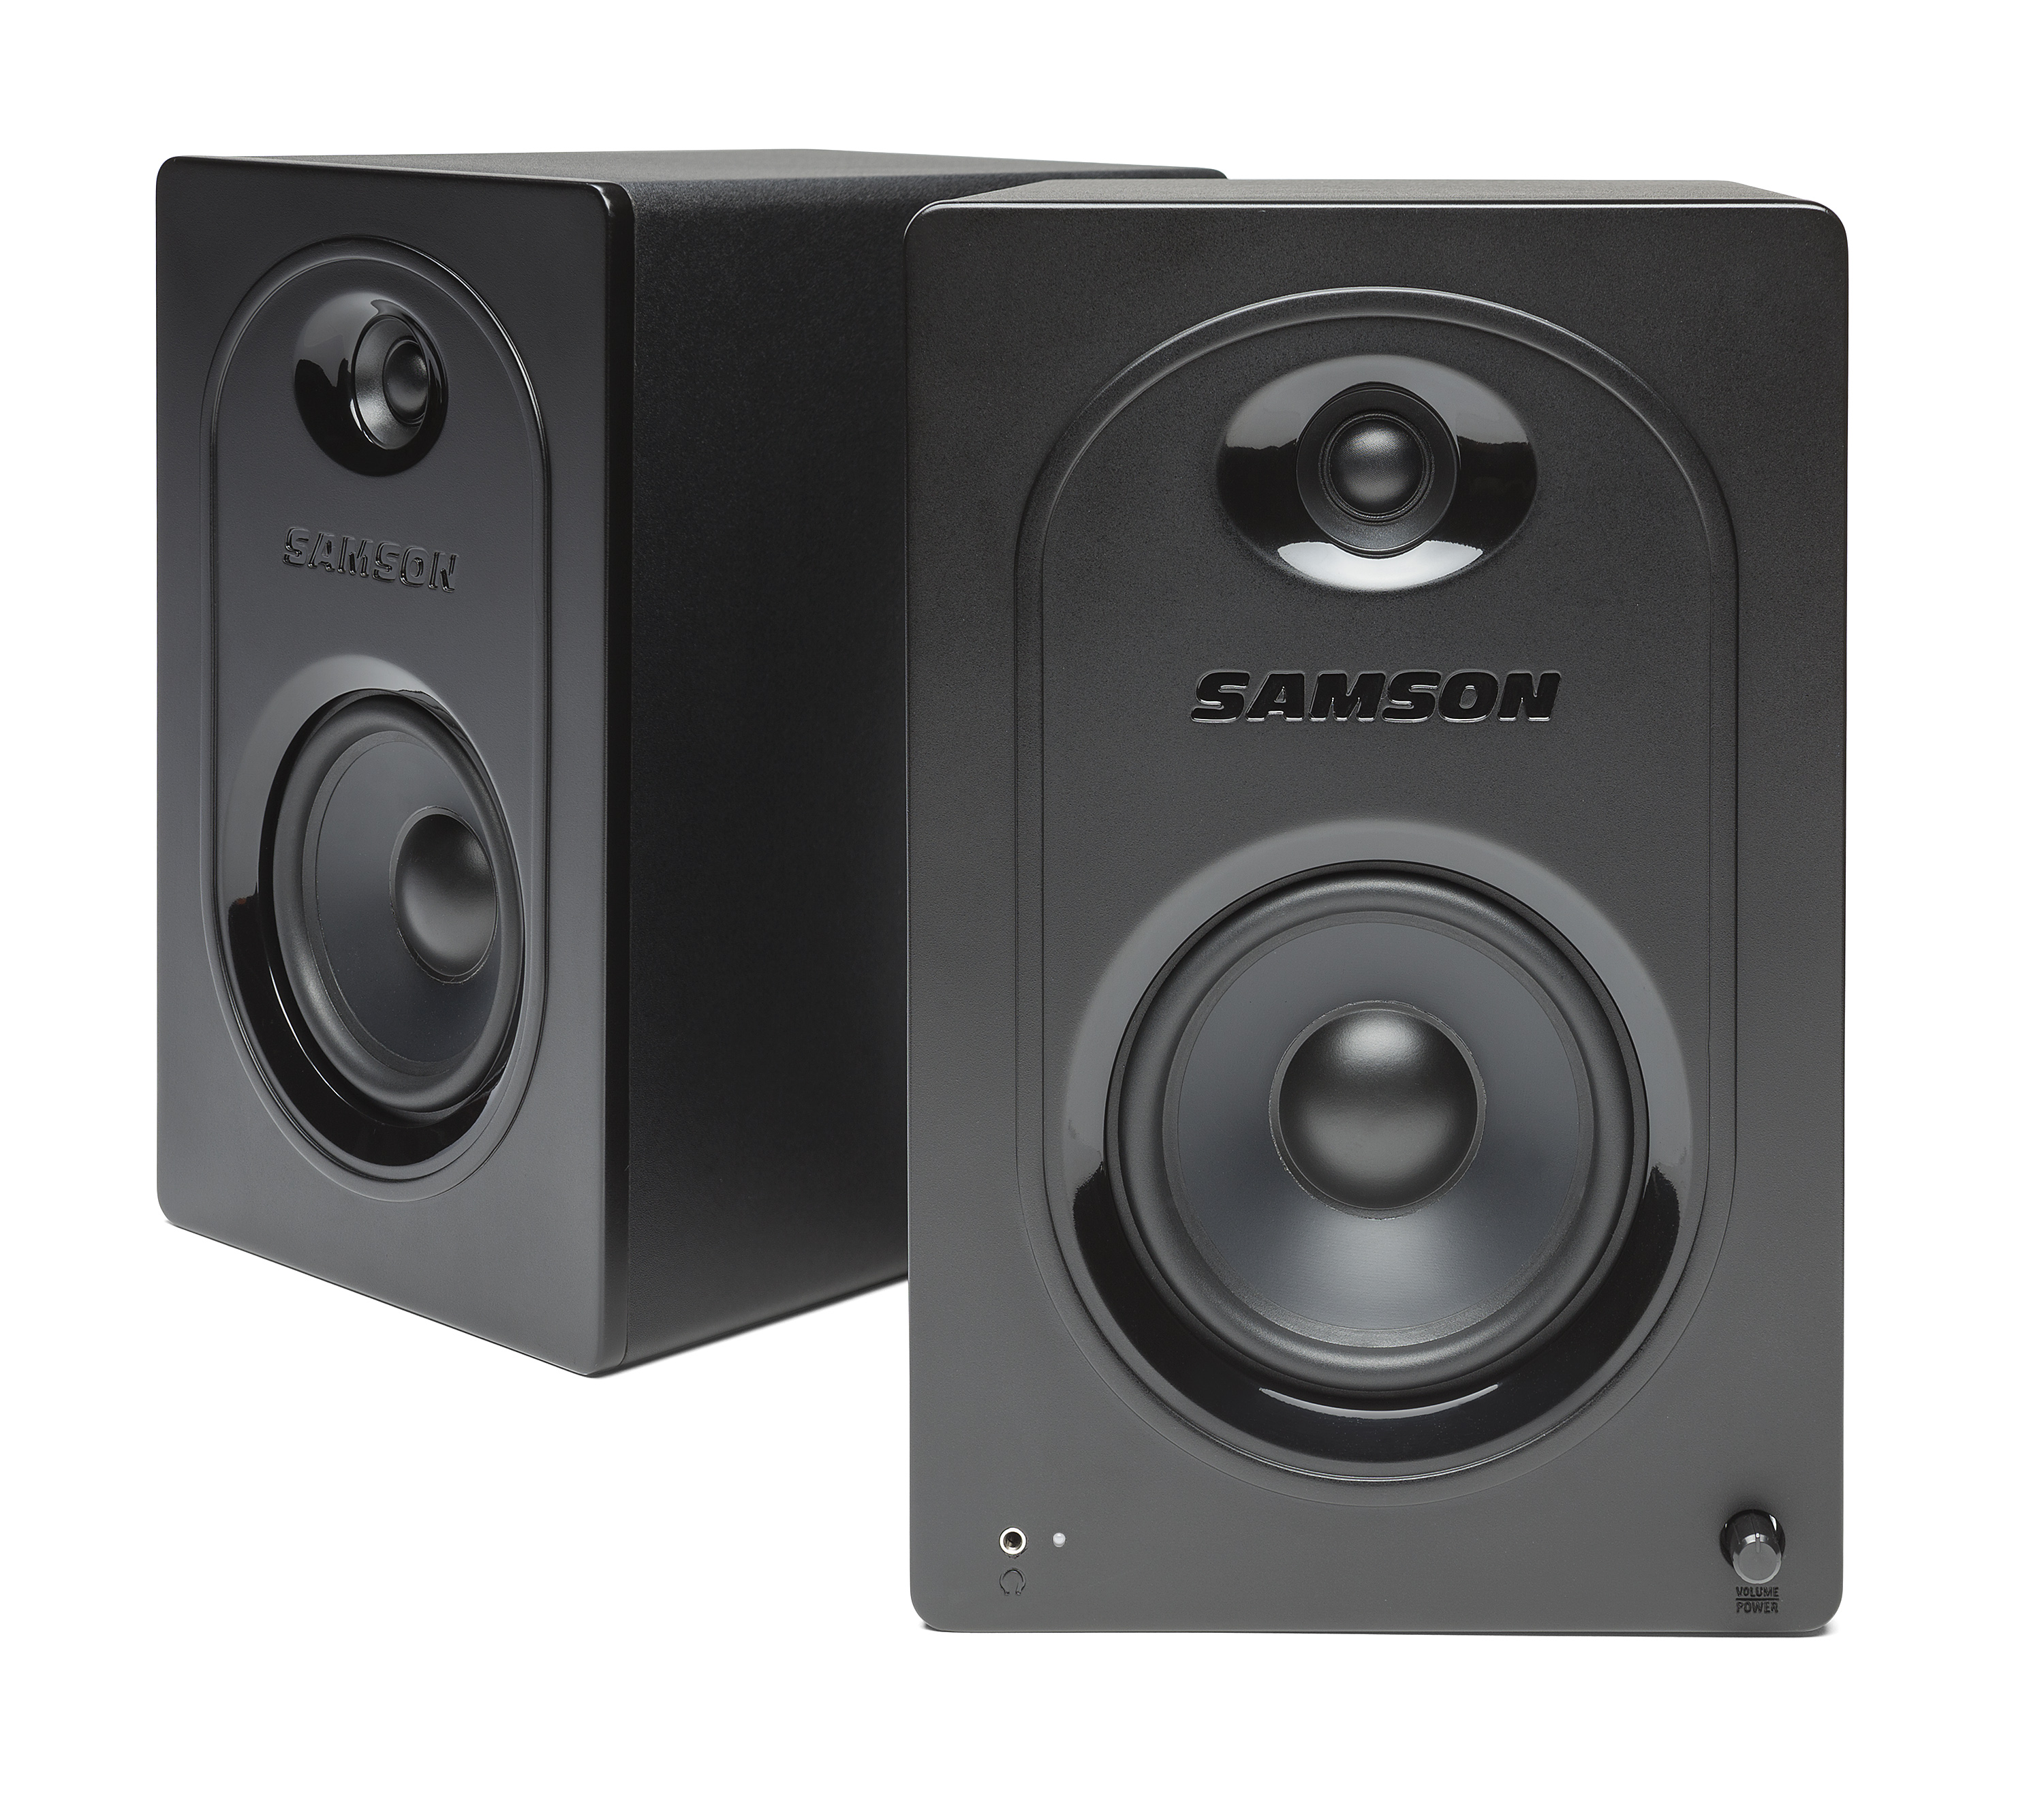 Samson Mediaone 10s Subwoofer Circuit For You Take It To Apply With Your Sound System Or M50 Powered Studio Monitors